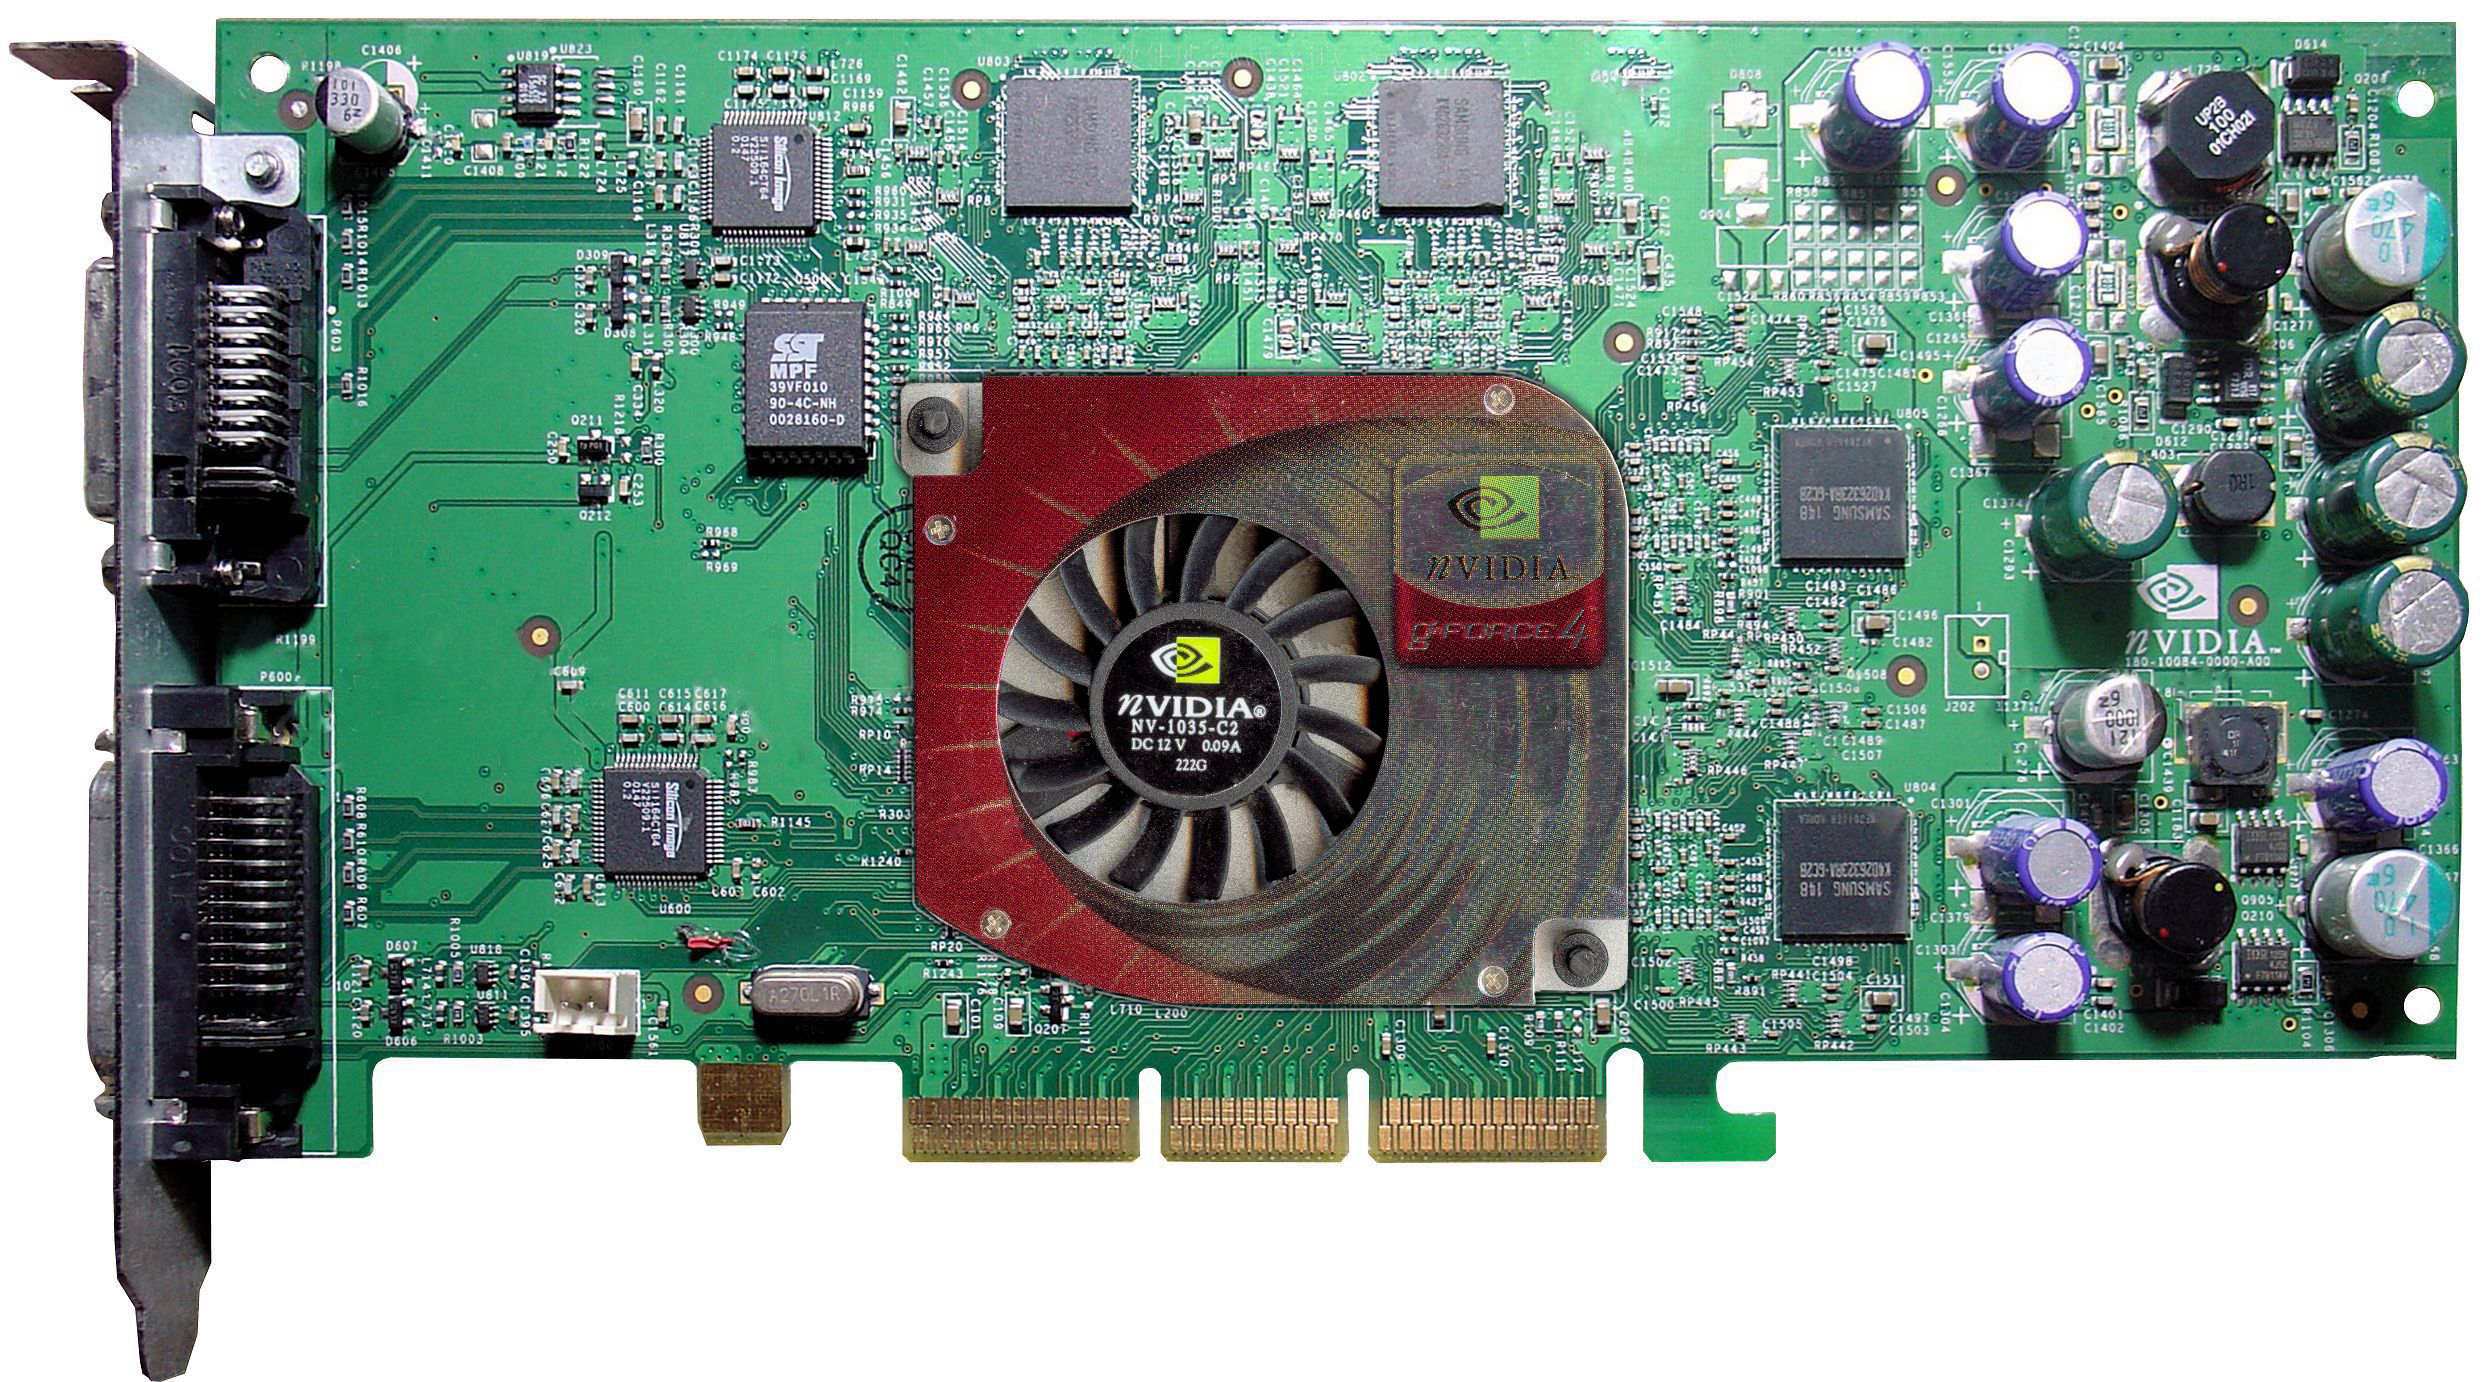 G-FORCE TI4600 DRIVERS FOR WINDOWS 8